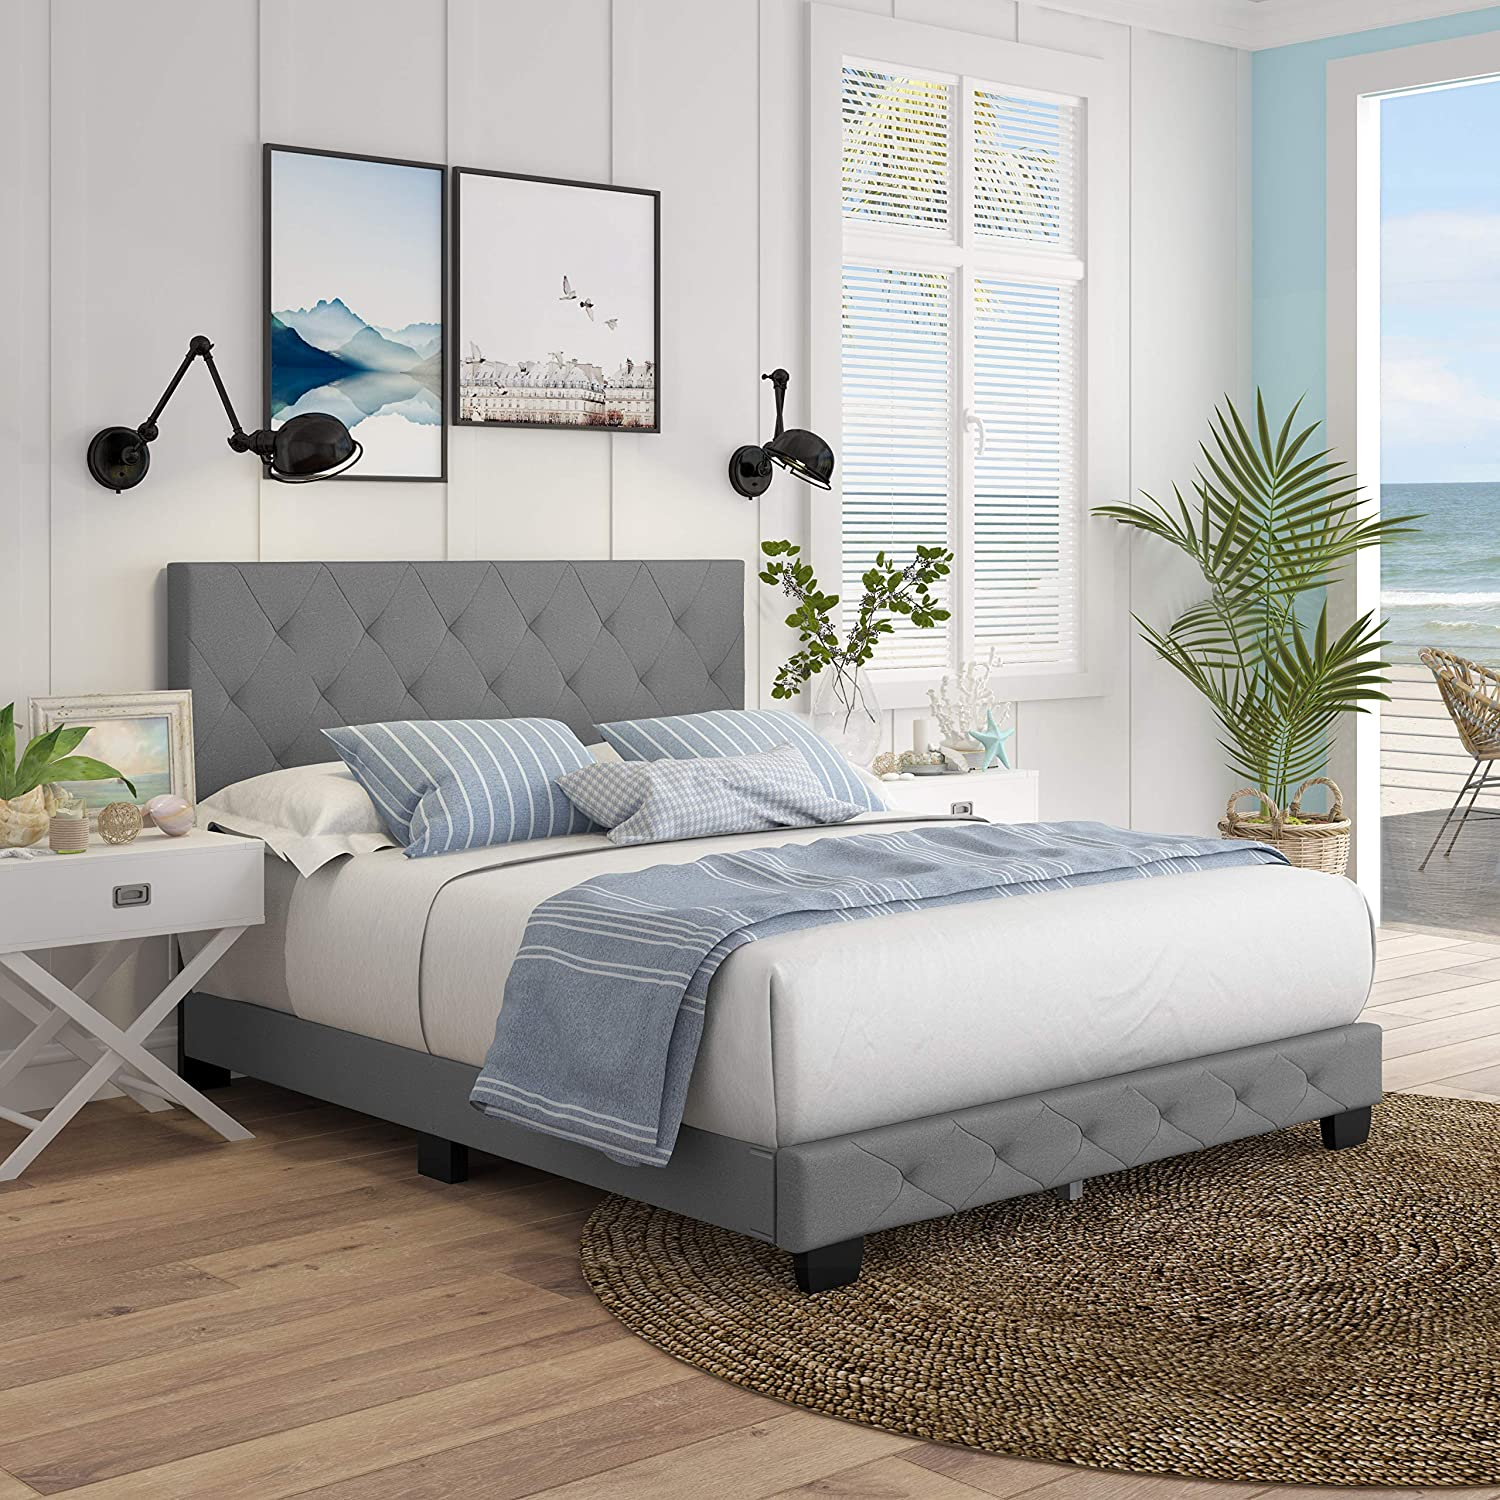 Super popular specialty store Boyd Sleep Chloe Upholstered Ranking TOP13 Tufted with Platform Bed Headboard